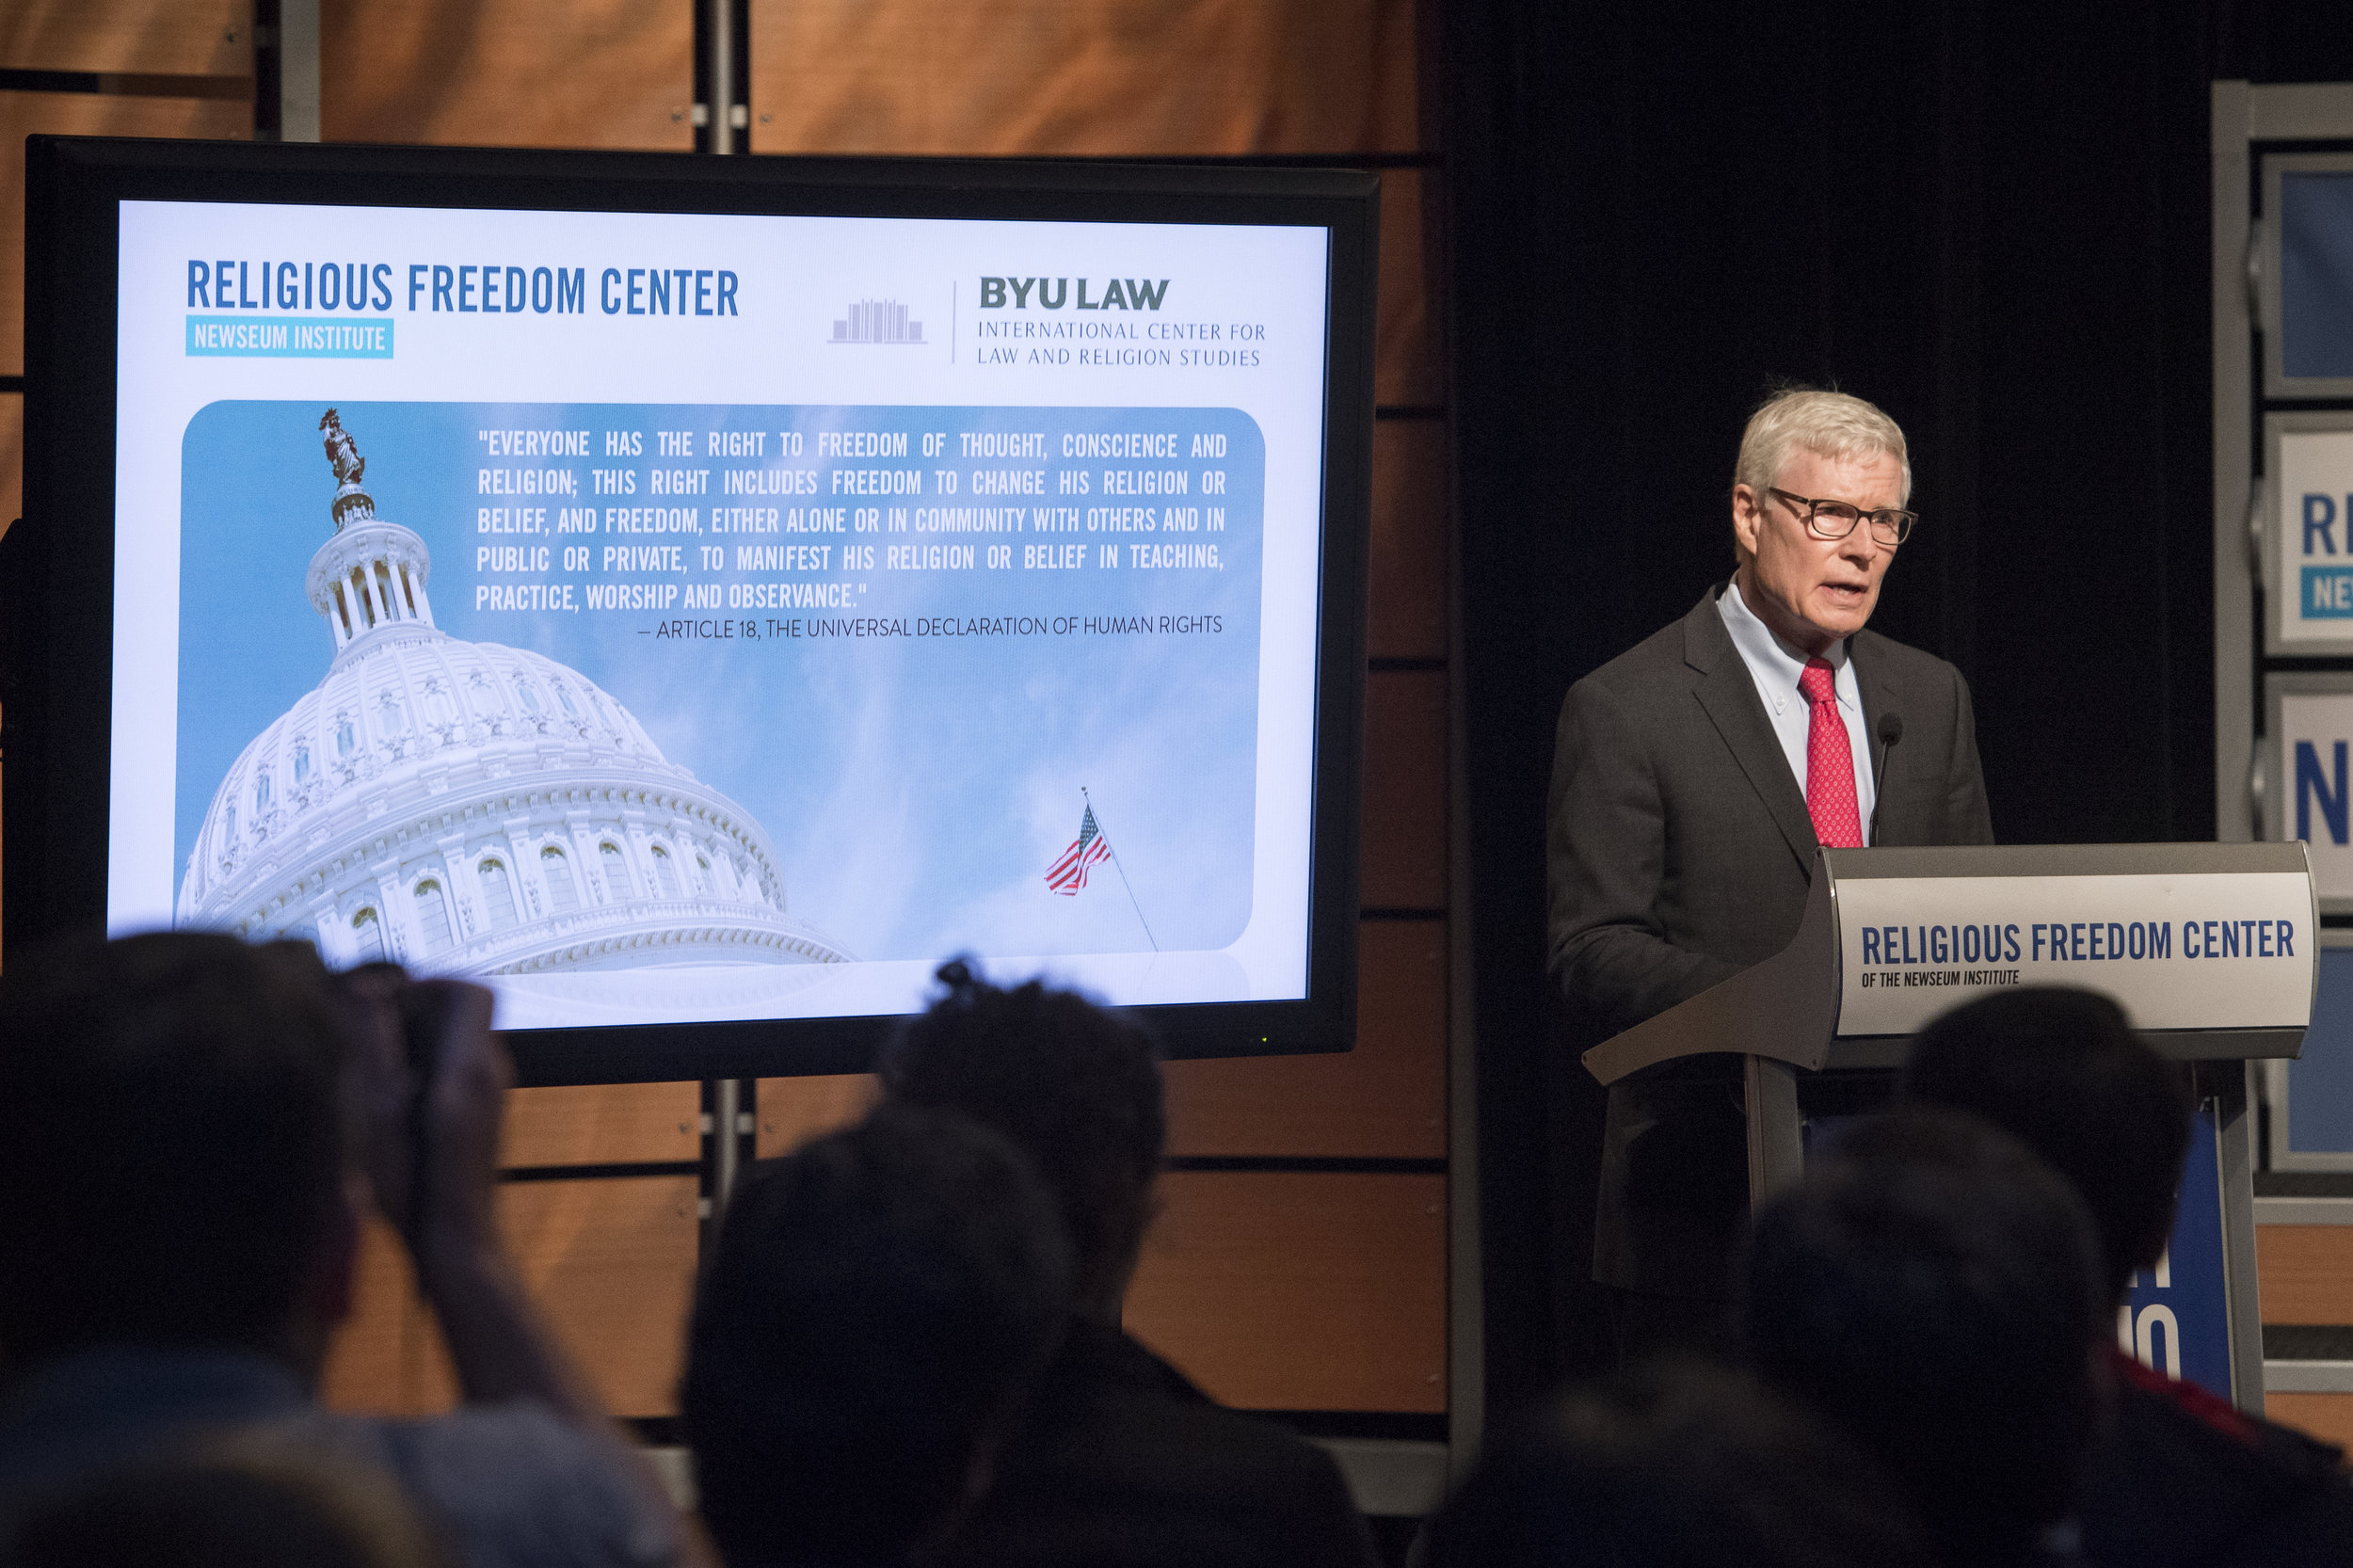 Charles C. Haynes, Vice President, Newseum Institute & Founding Director, Religious Freedom Center